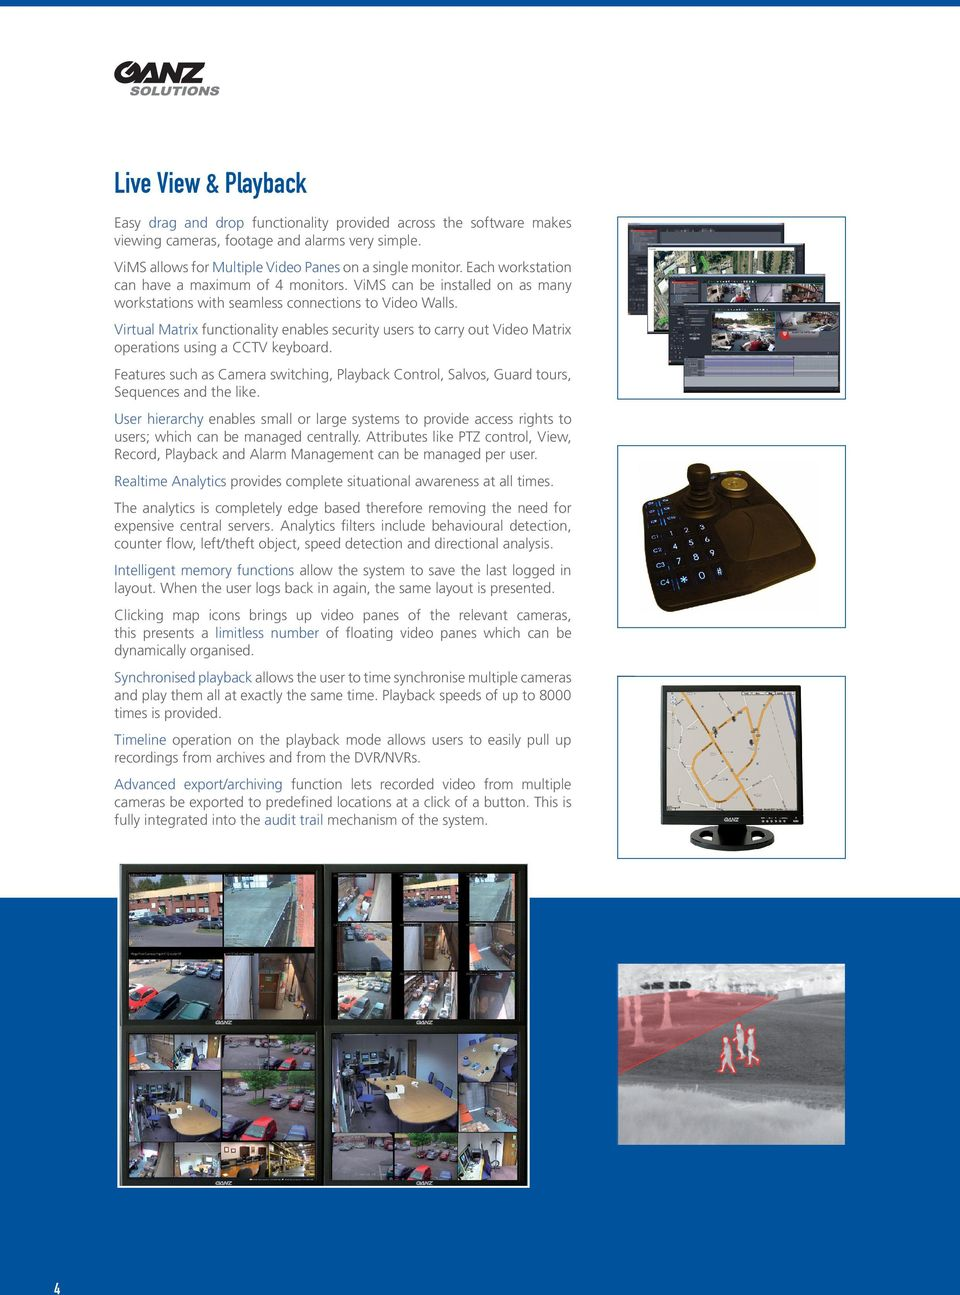 Virtual Matrix functionality enables security users to carry out Video Matrix operations using a CCTV keyboard.